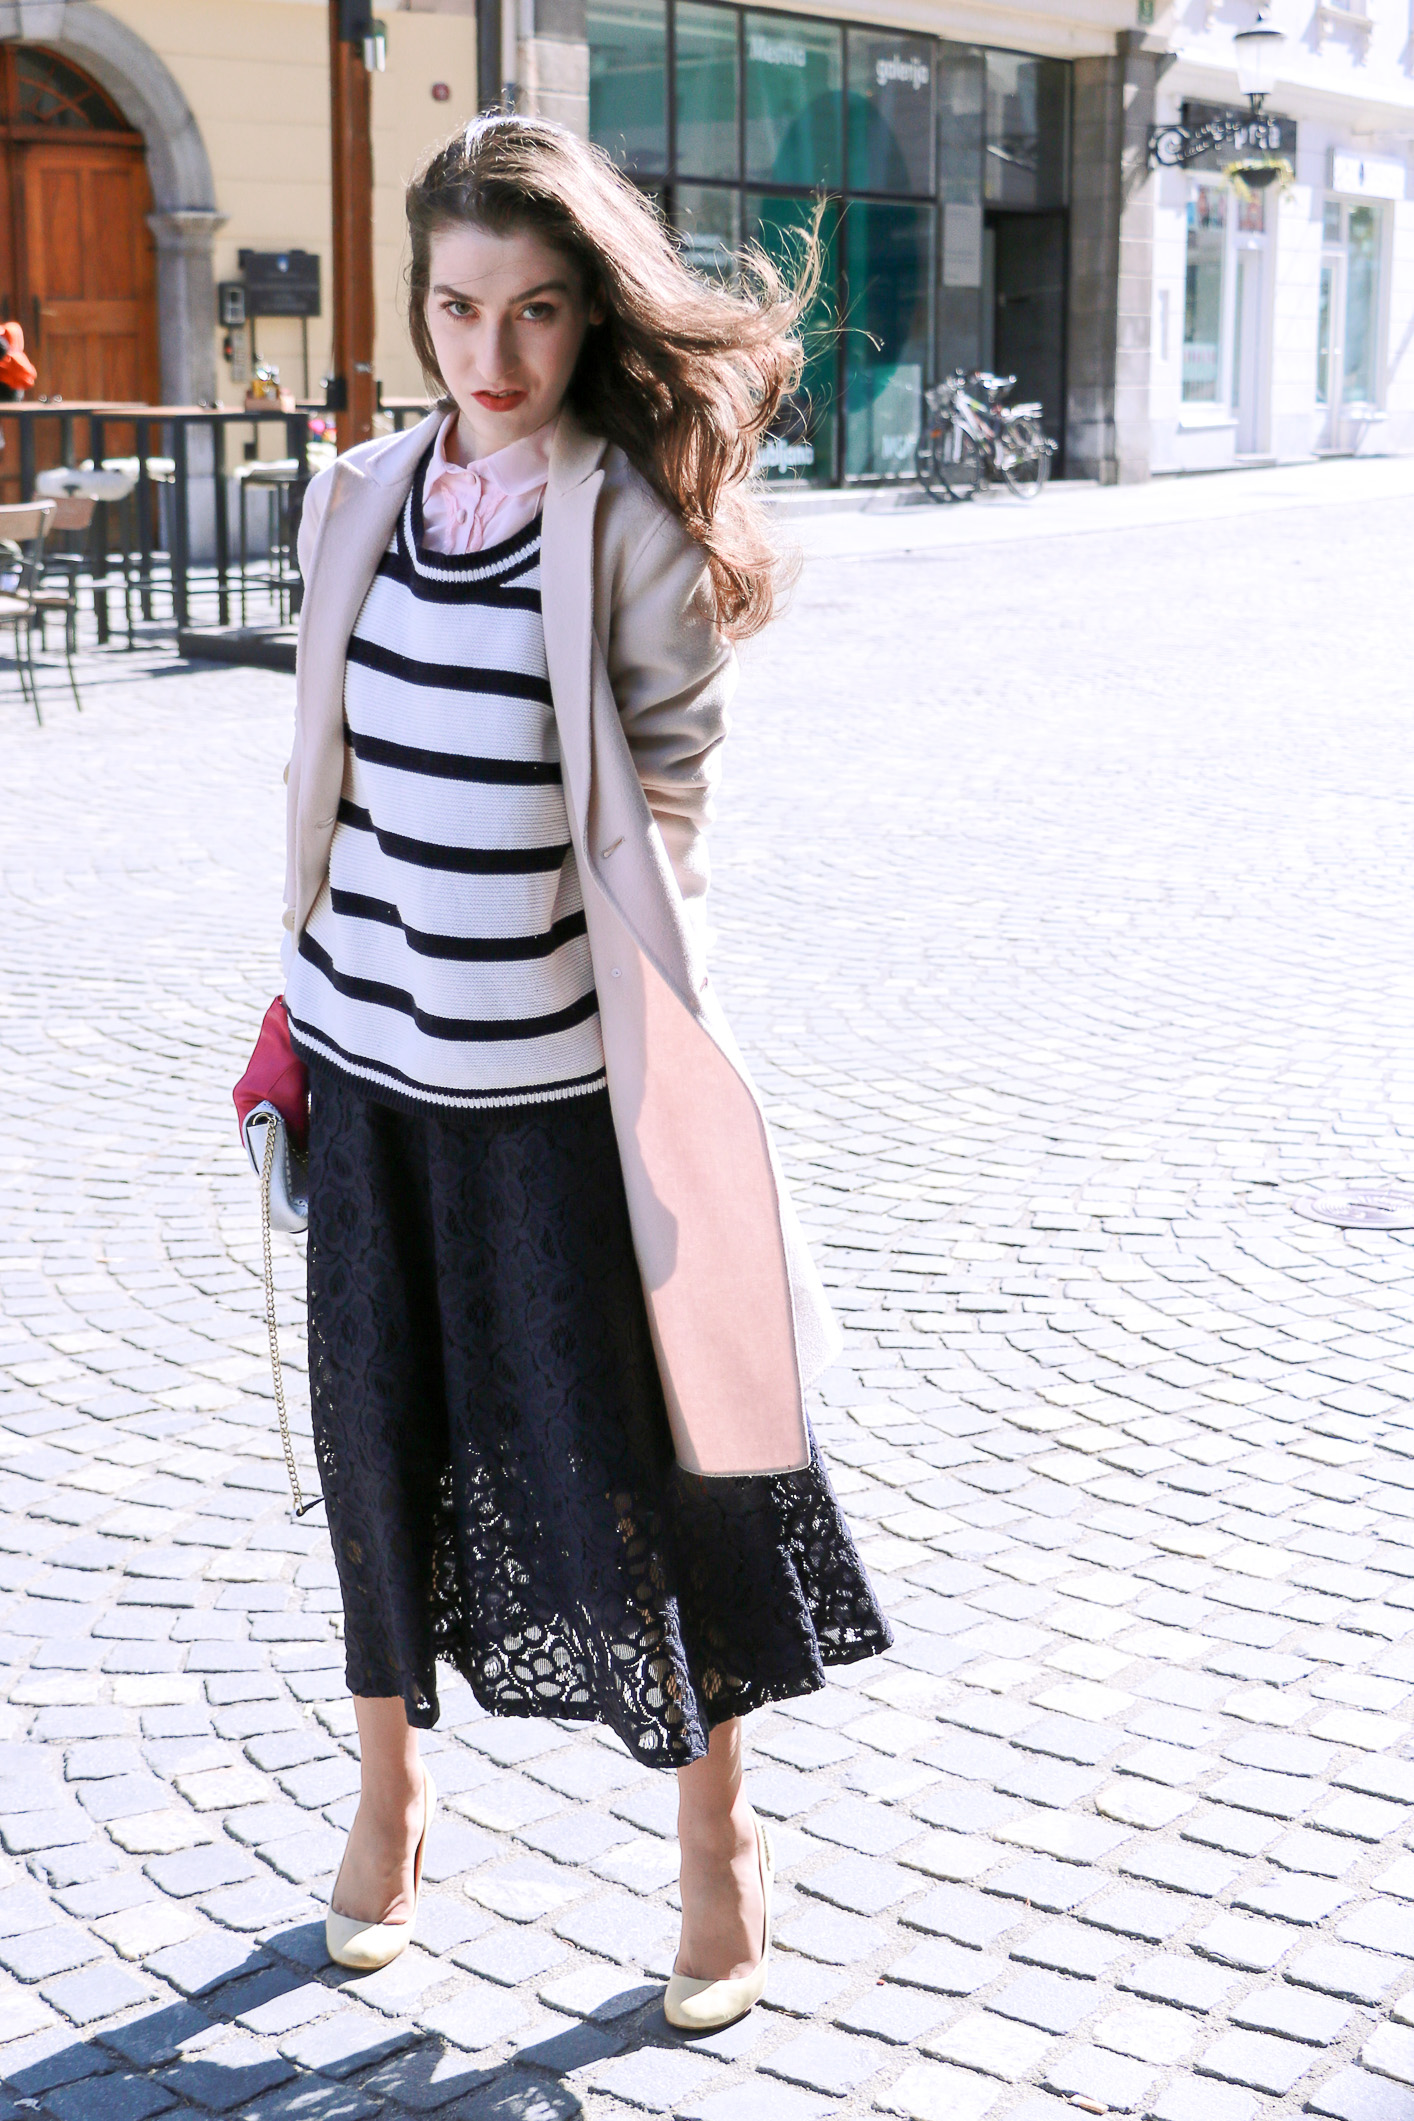 Fashion blogger Veronika Lipar of Brunette From Wall Street on how to wear striped top over the midi skirt as seen on the catwalks this season